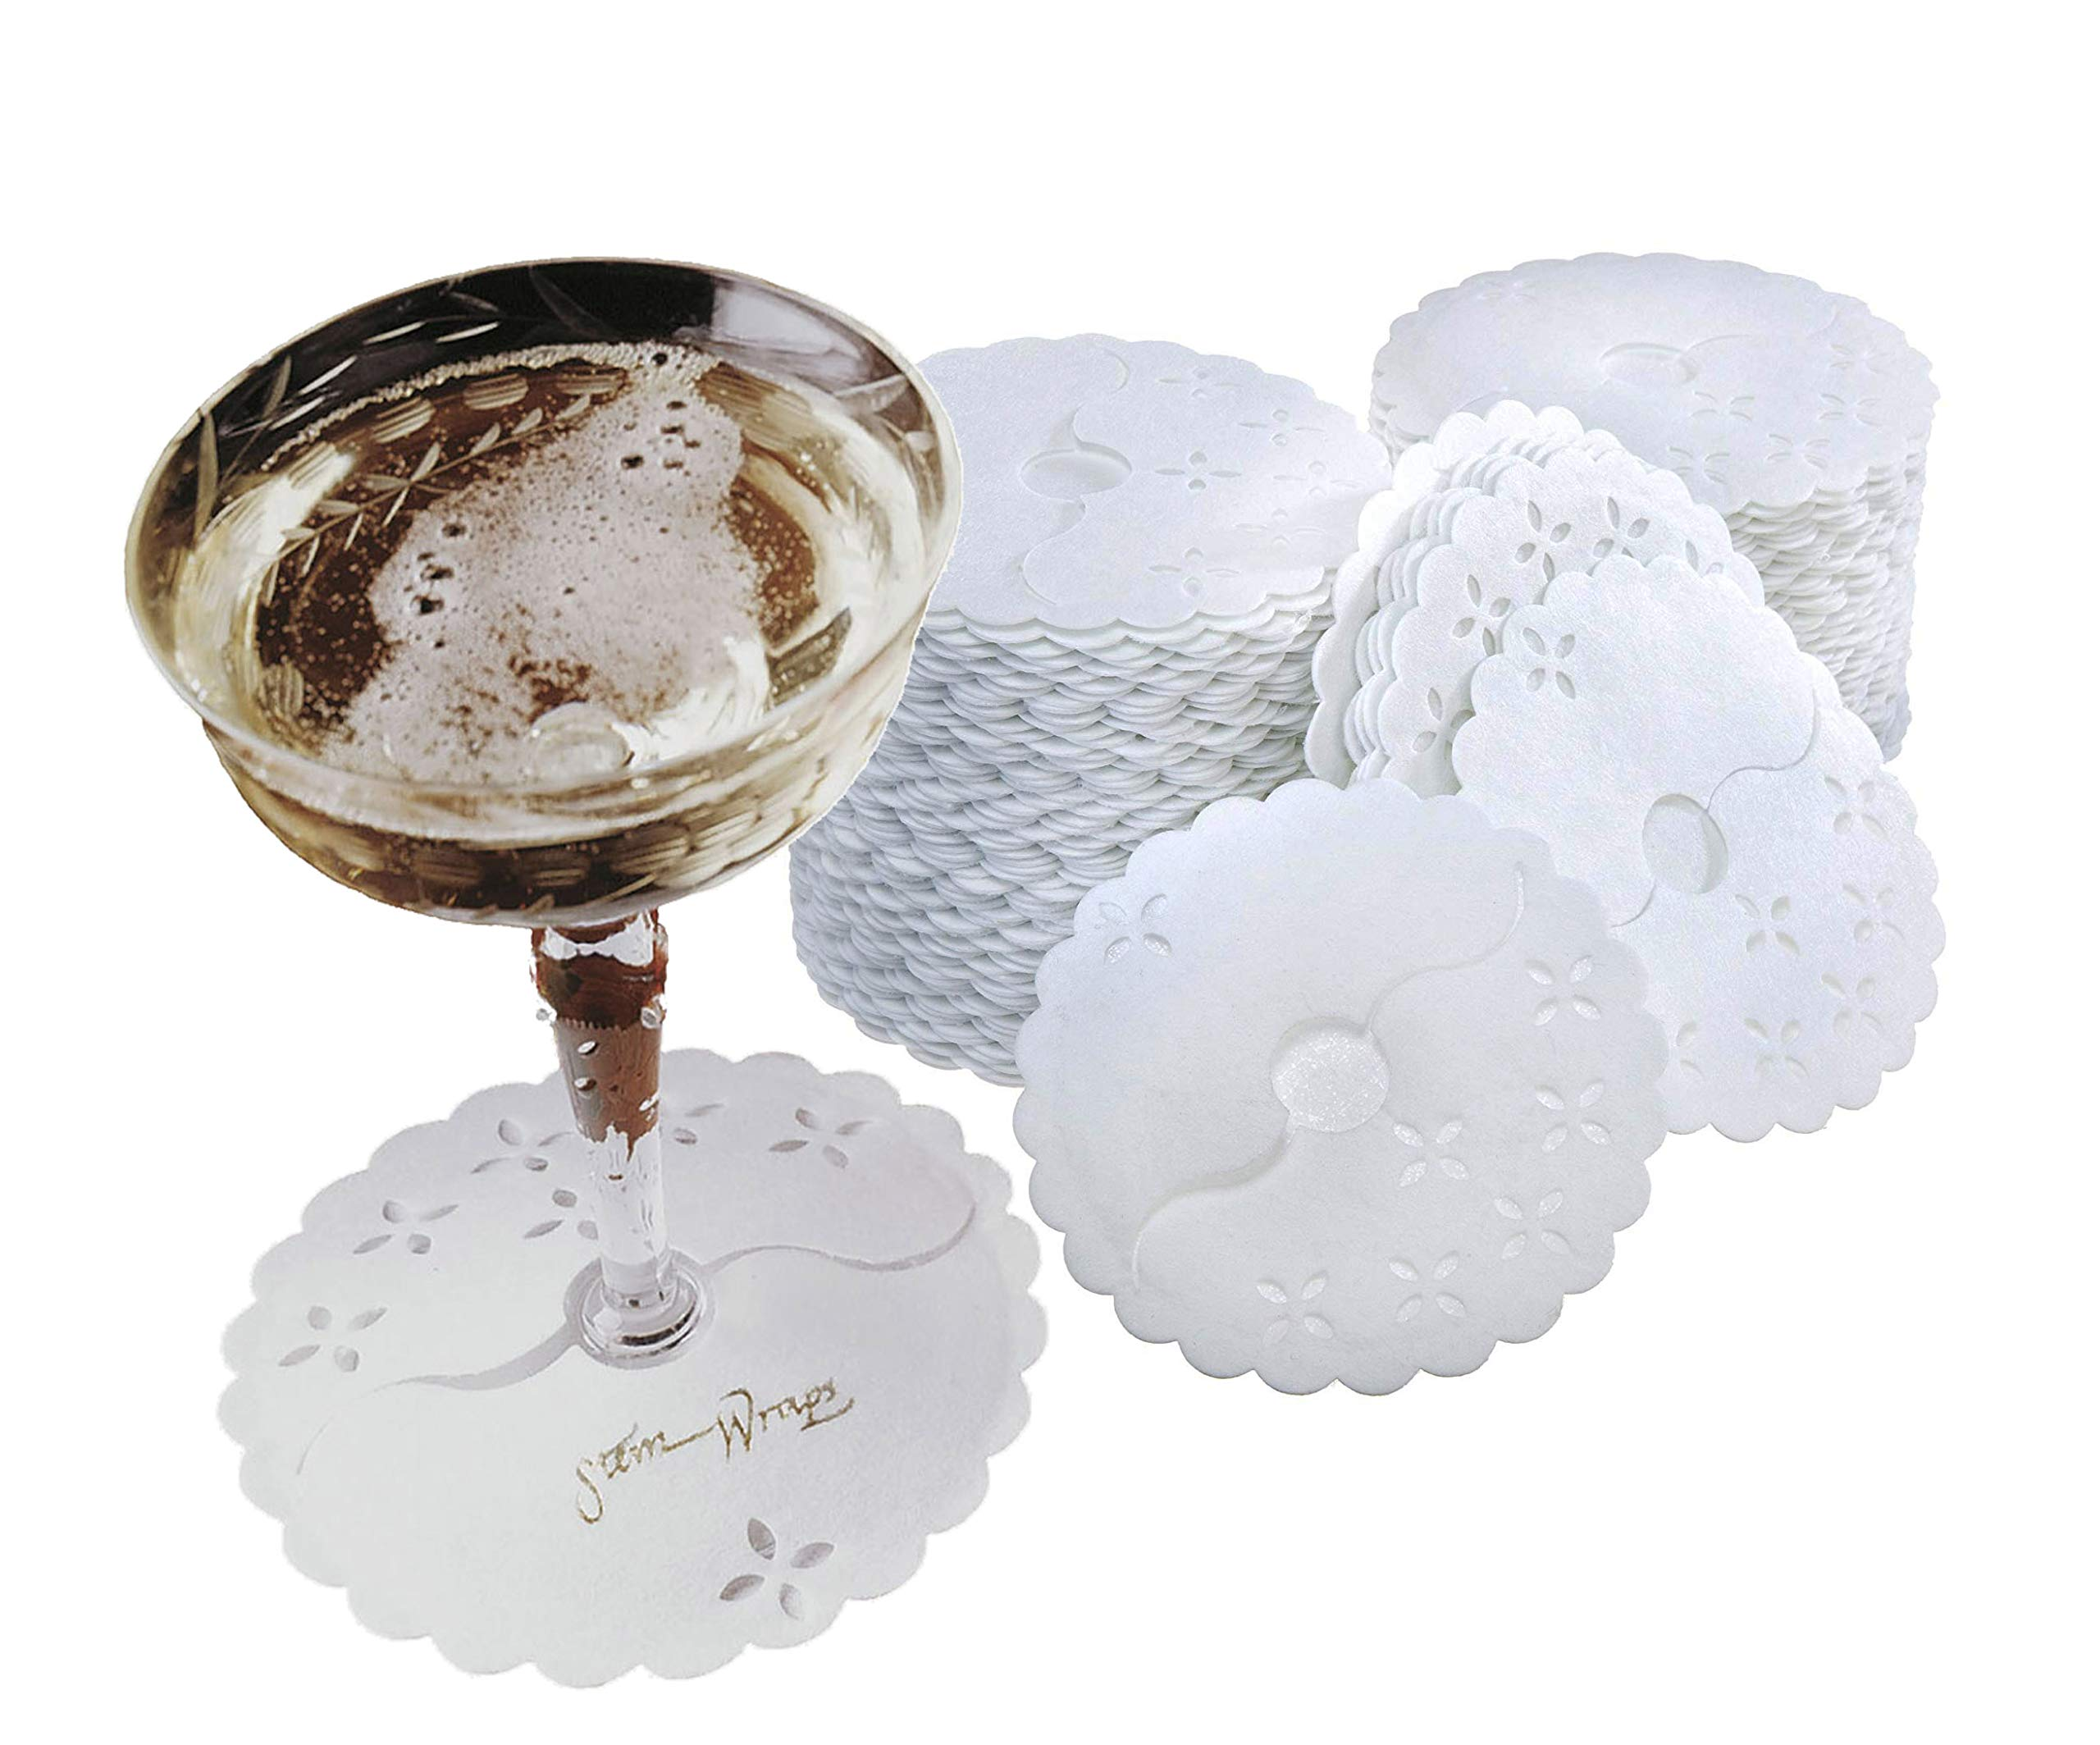 Regency Stem Wraps for the bases of stemmed glasses,  Bag of 125 Disposable Fabric Covers